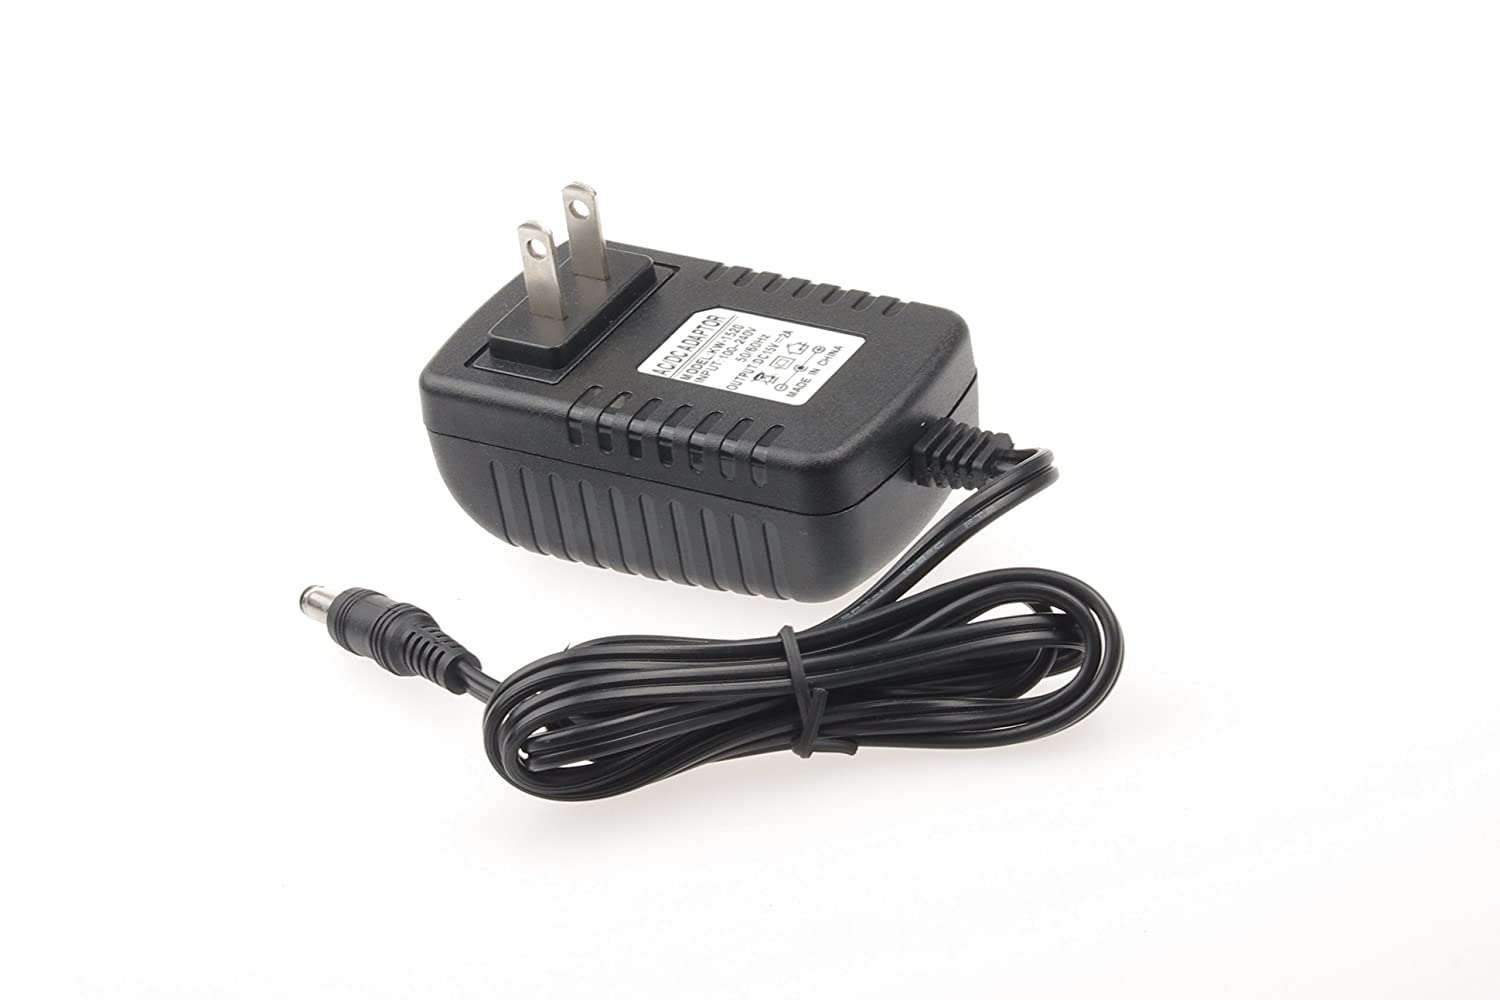 Smakn Dc 15v 2a Switching Power Supply Adapter 100 240 Innovative Circuit Ict120124a Comm Series 120vac 12vdc 4 Amp Ac Electronics